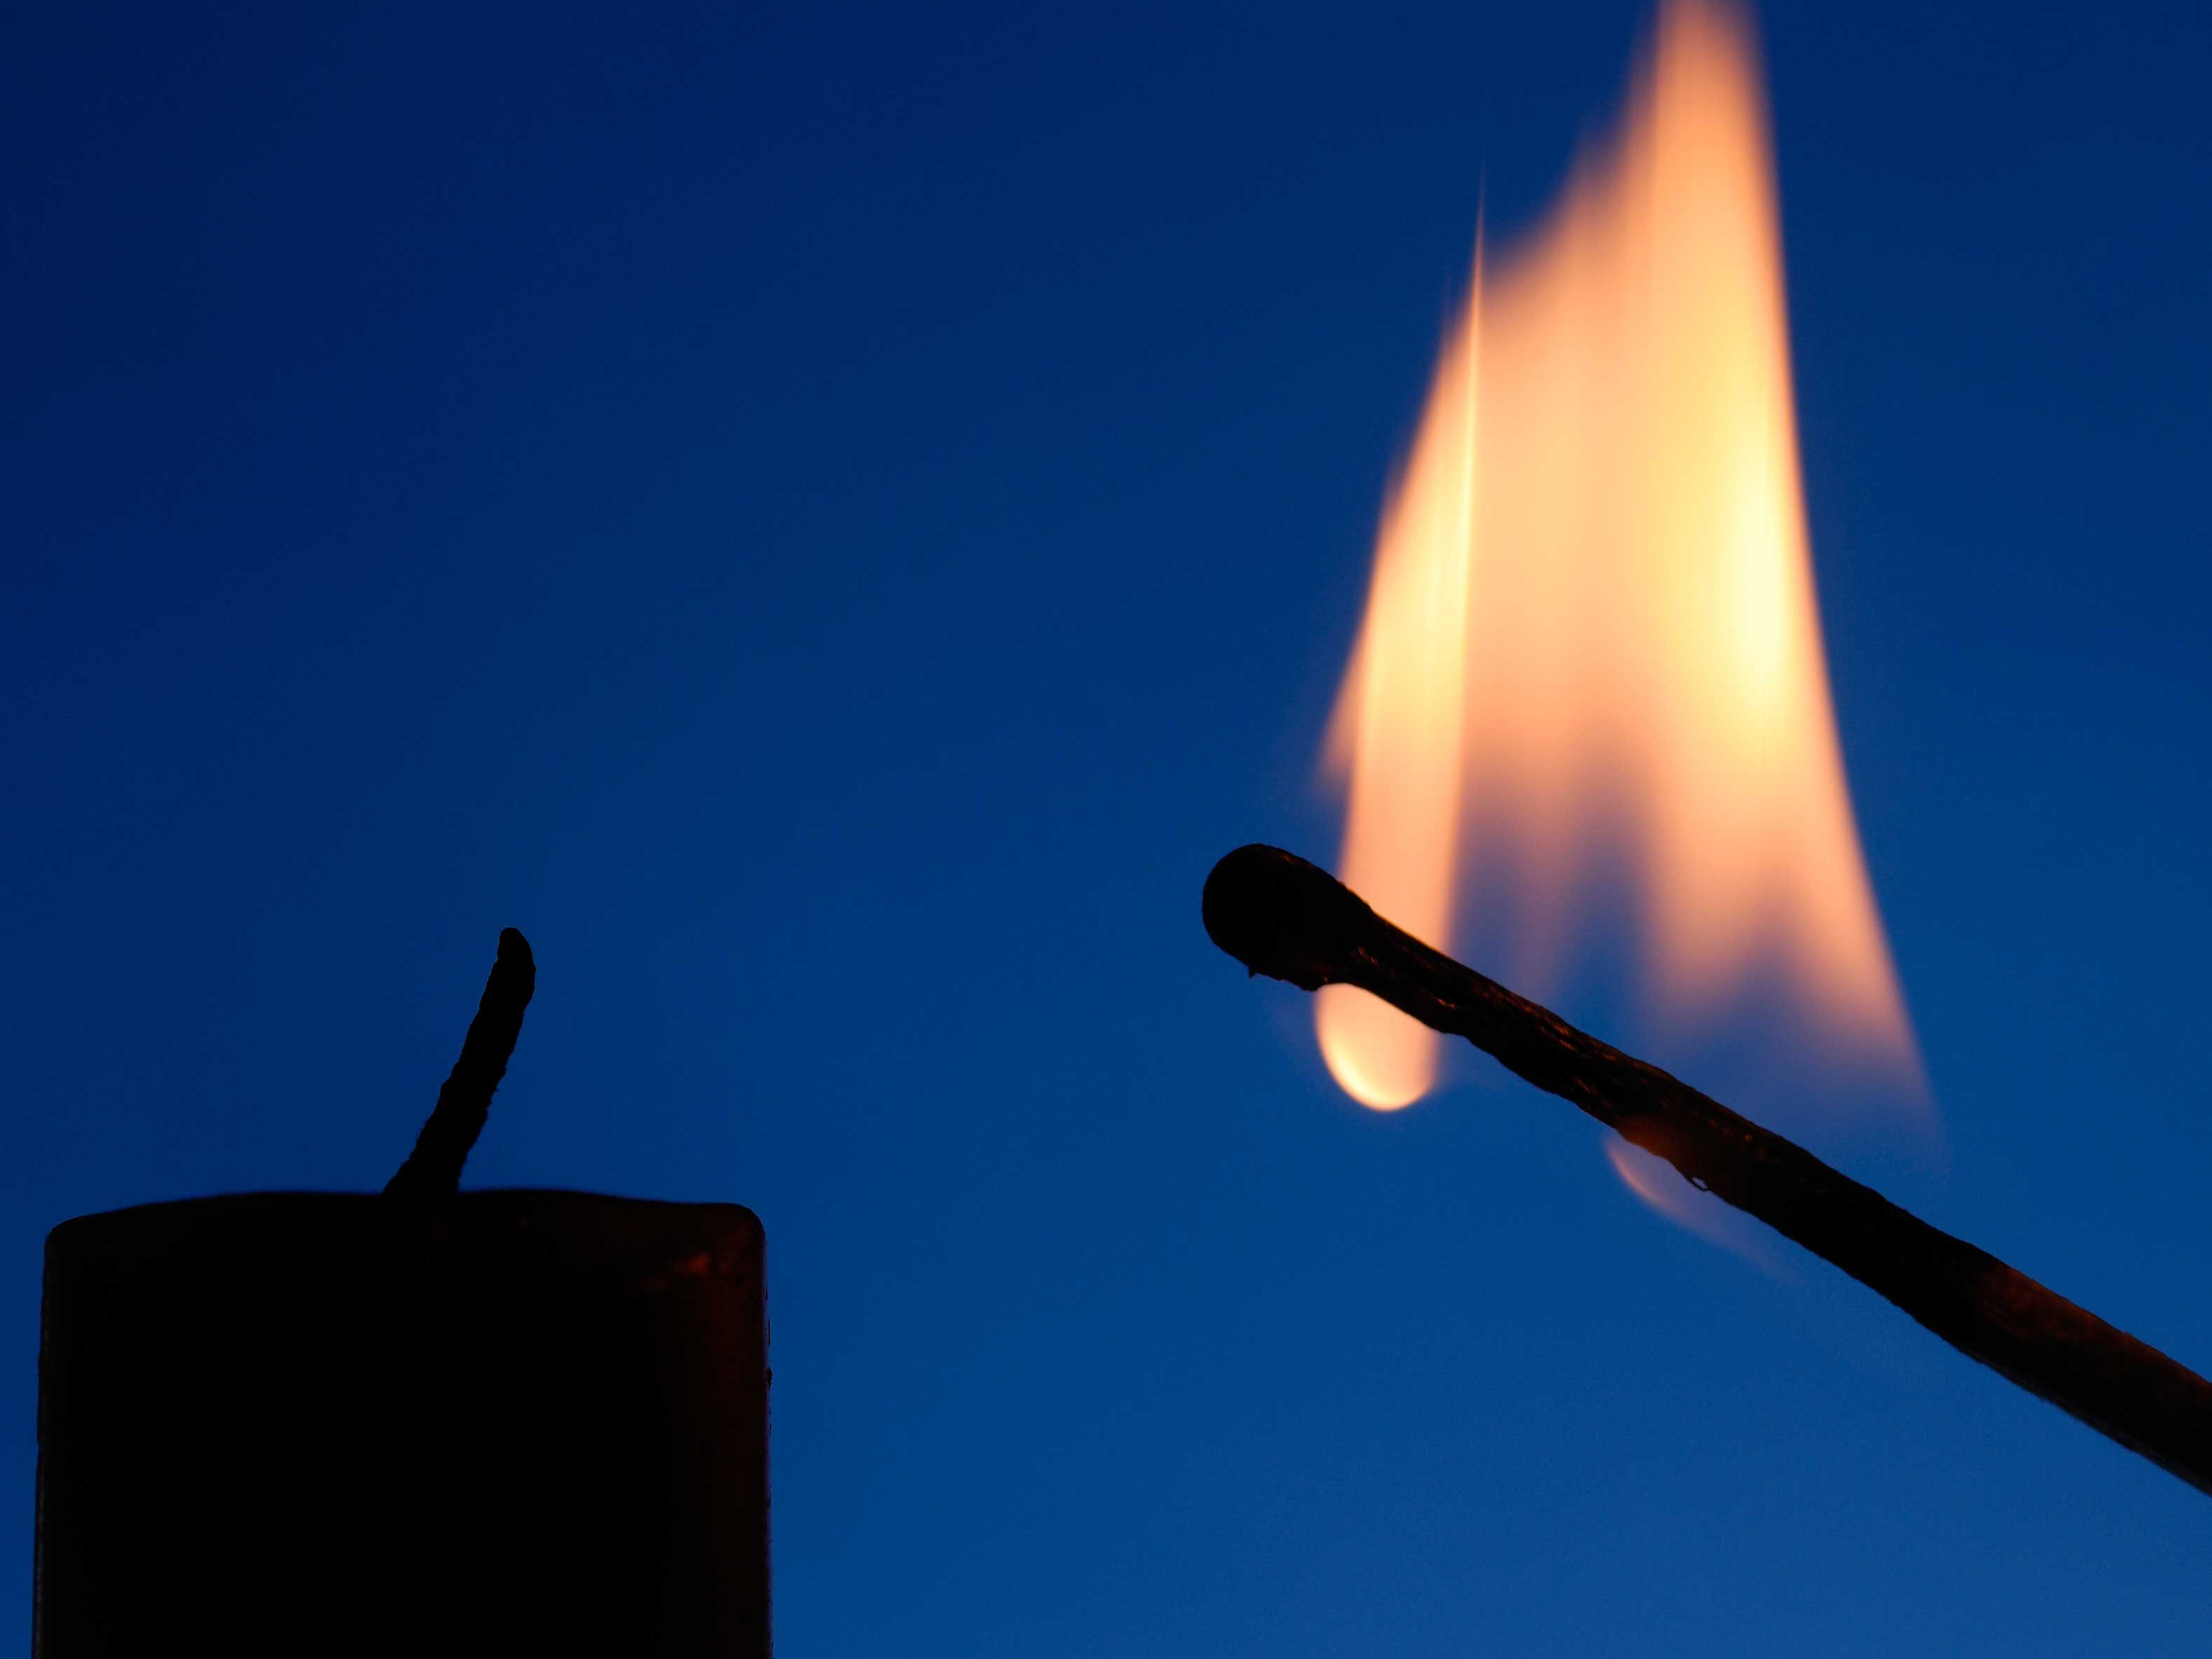 A Candle and Matches